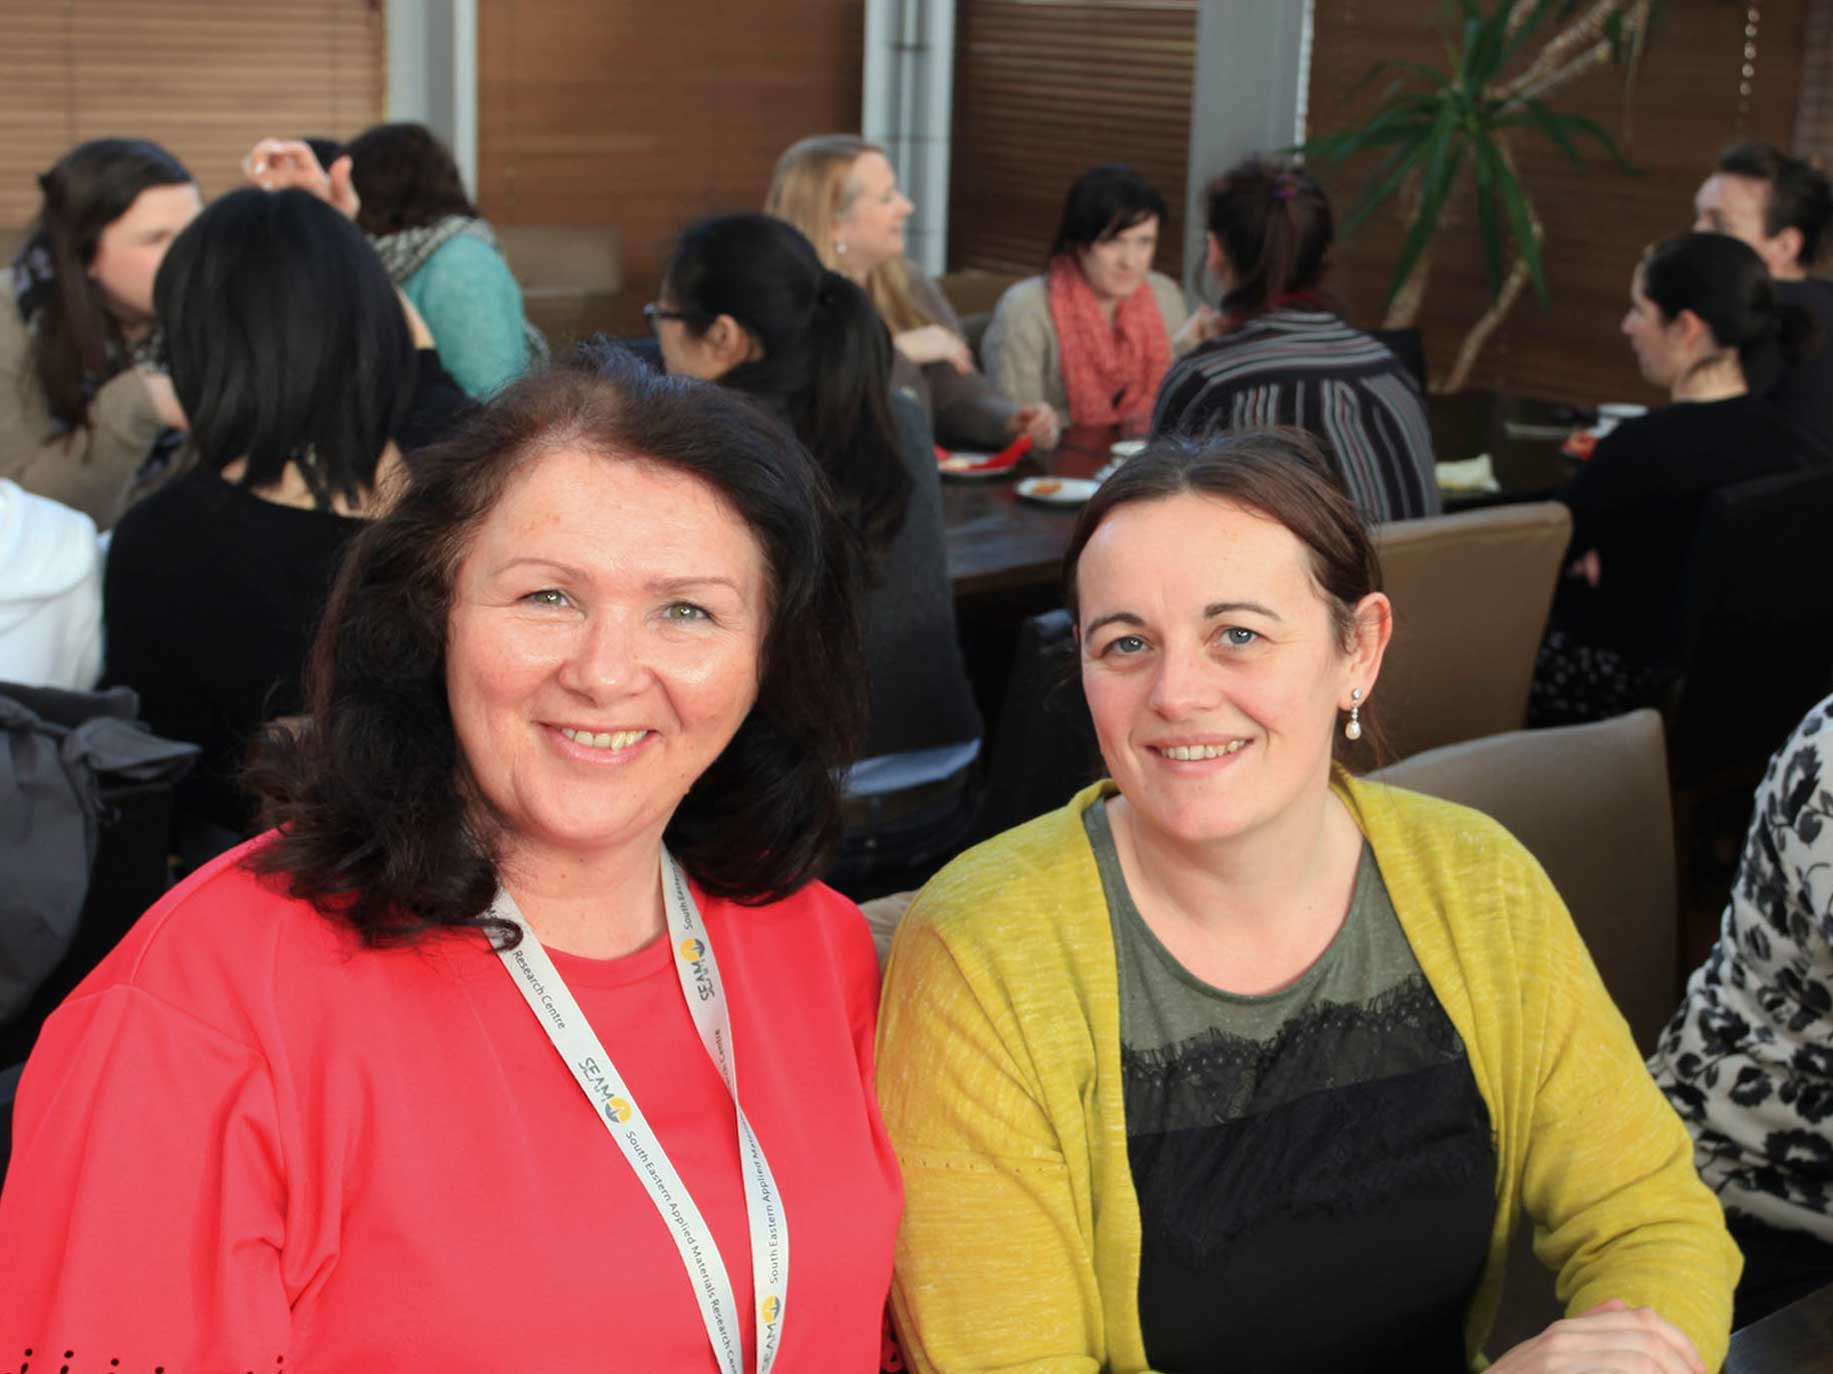 School of Engineering staff Eimear Kirwan and Vivenne Evans at the ladies coffee morning